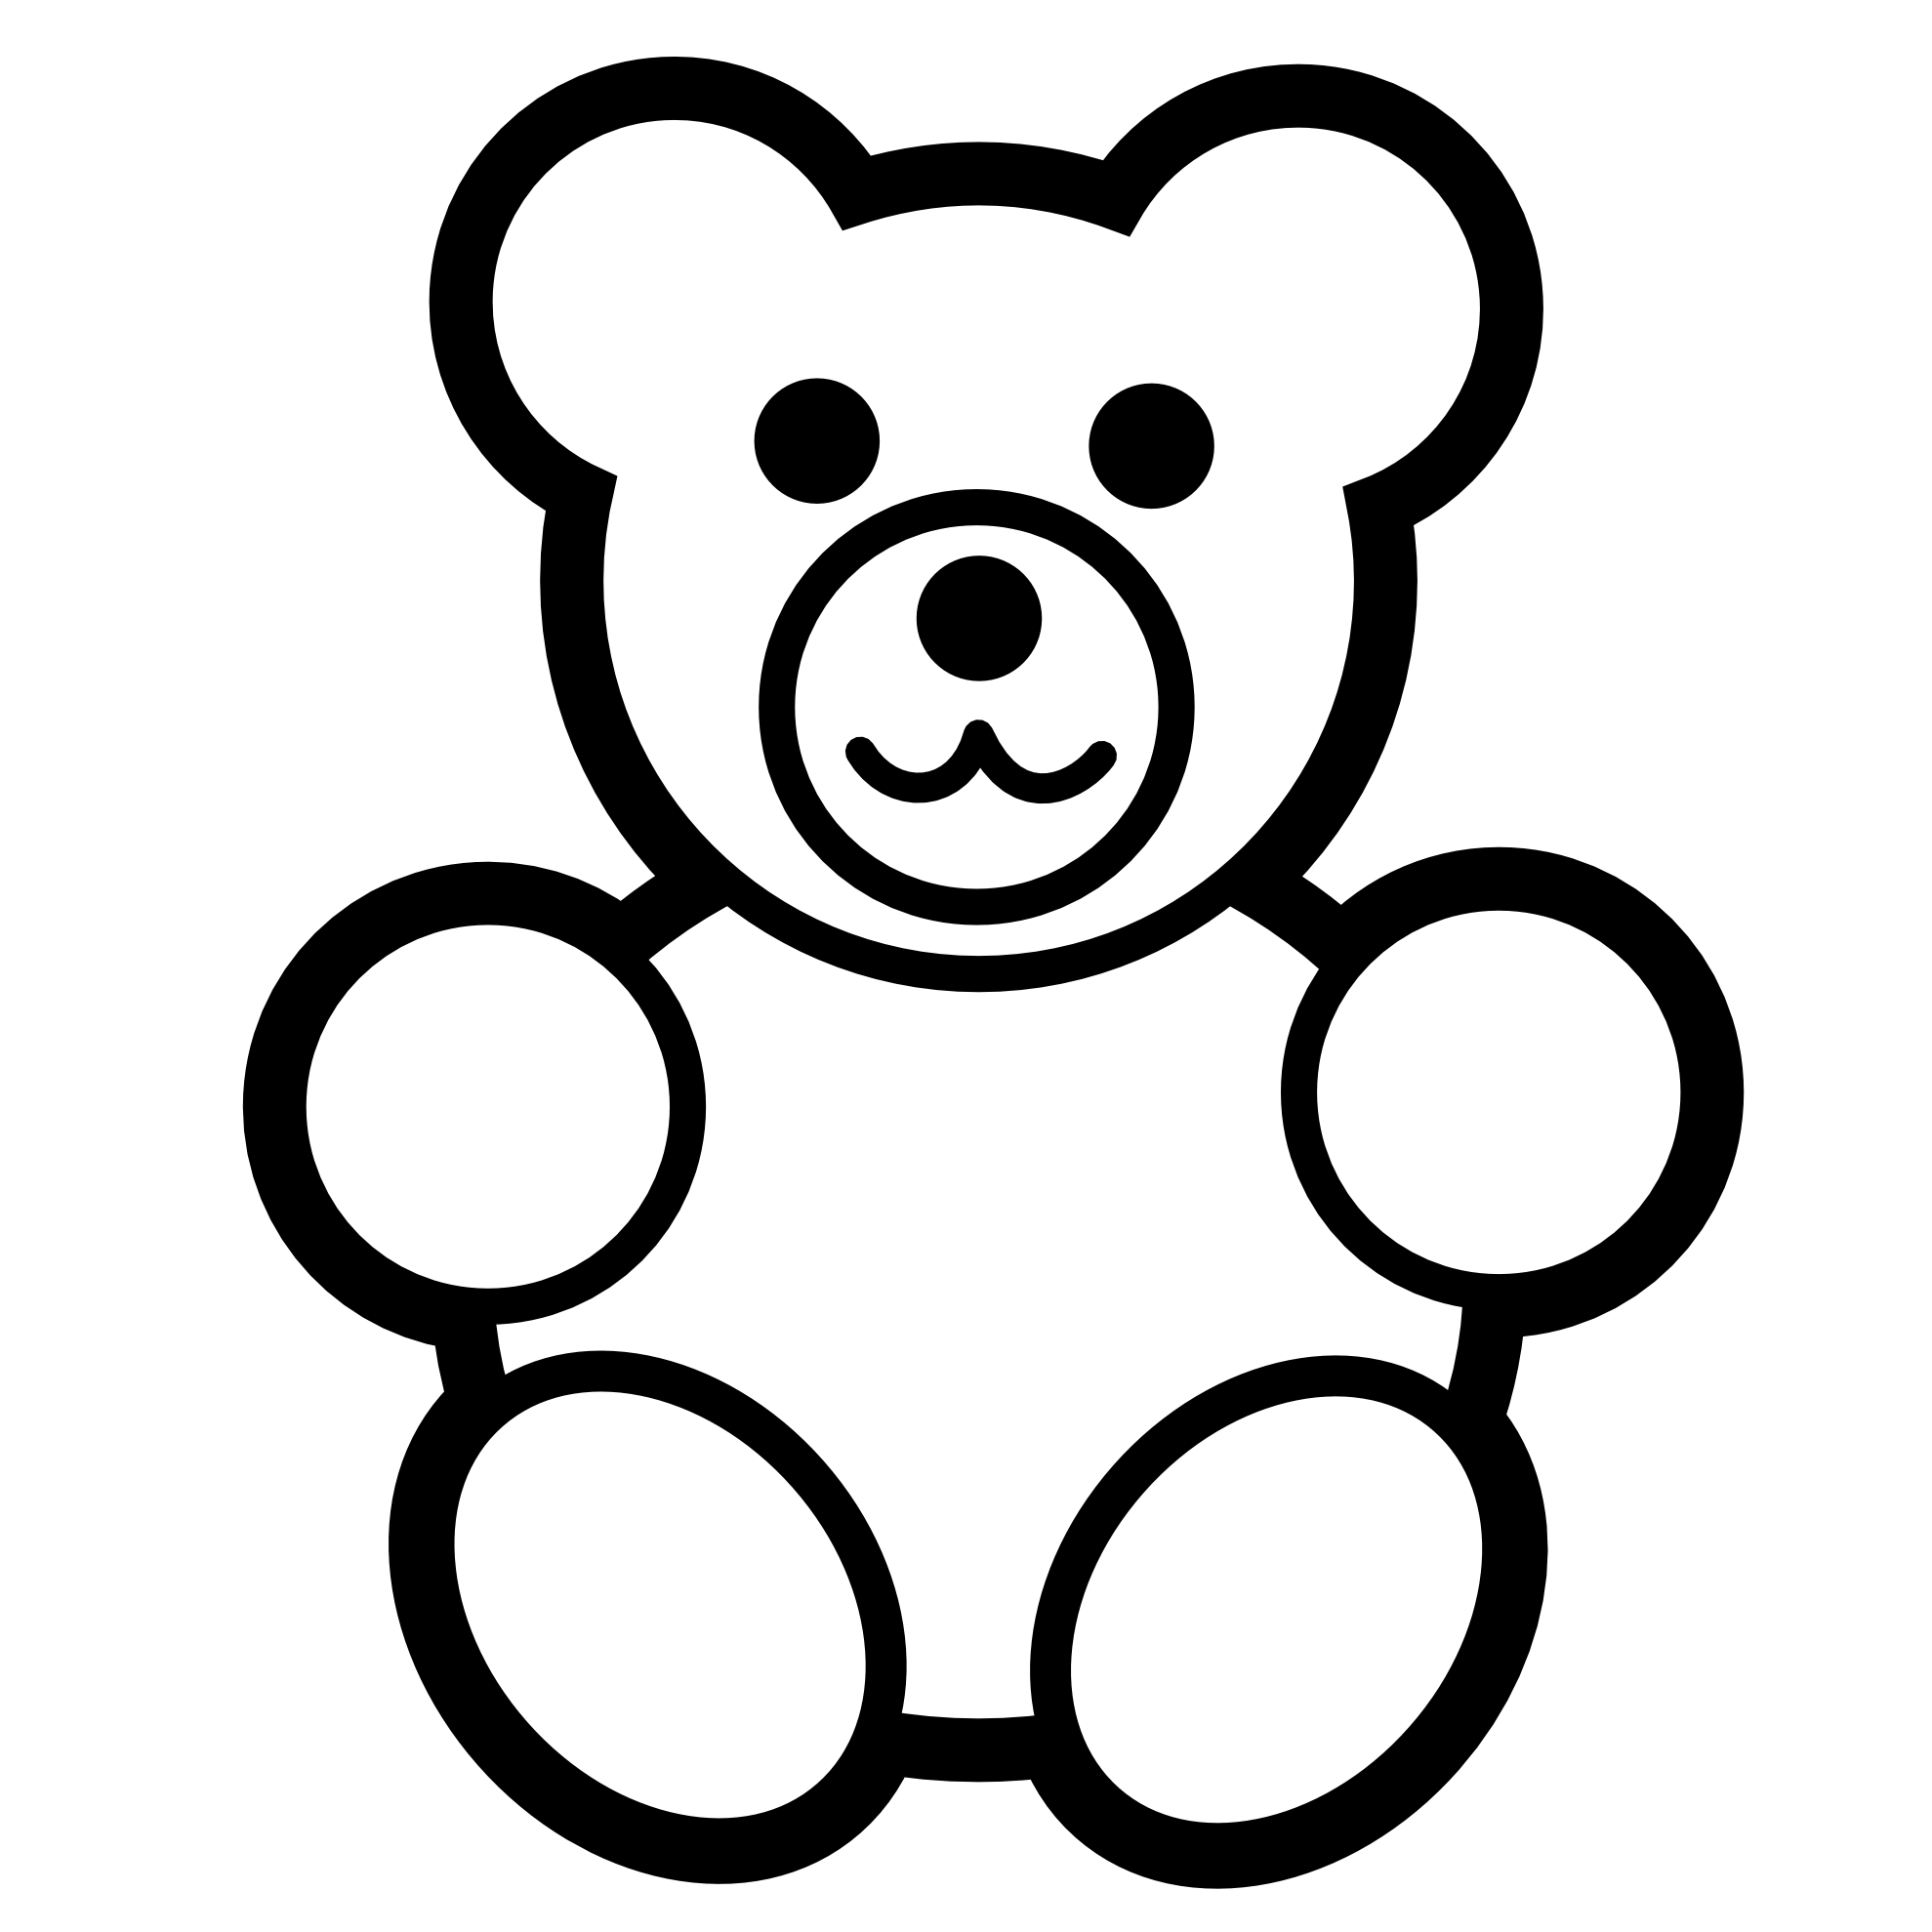 Out Line Of A Bear To Colour - ClipArt Best